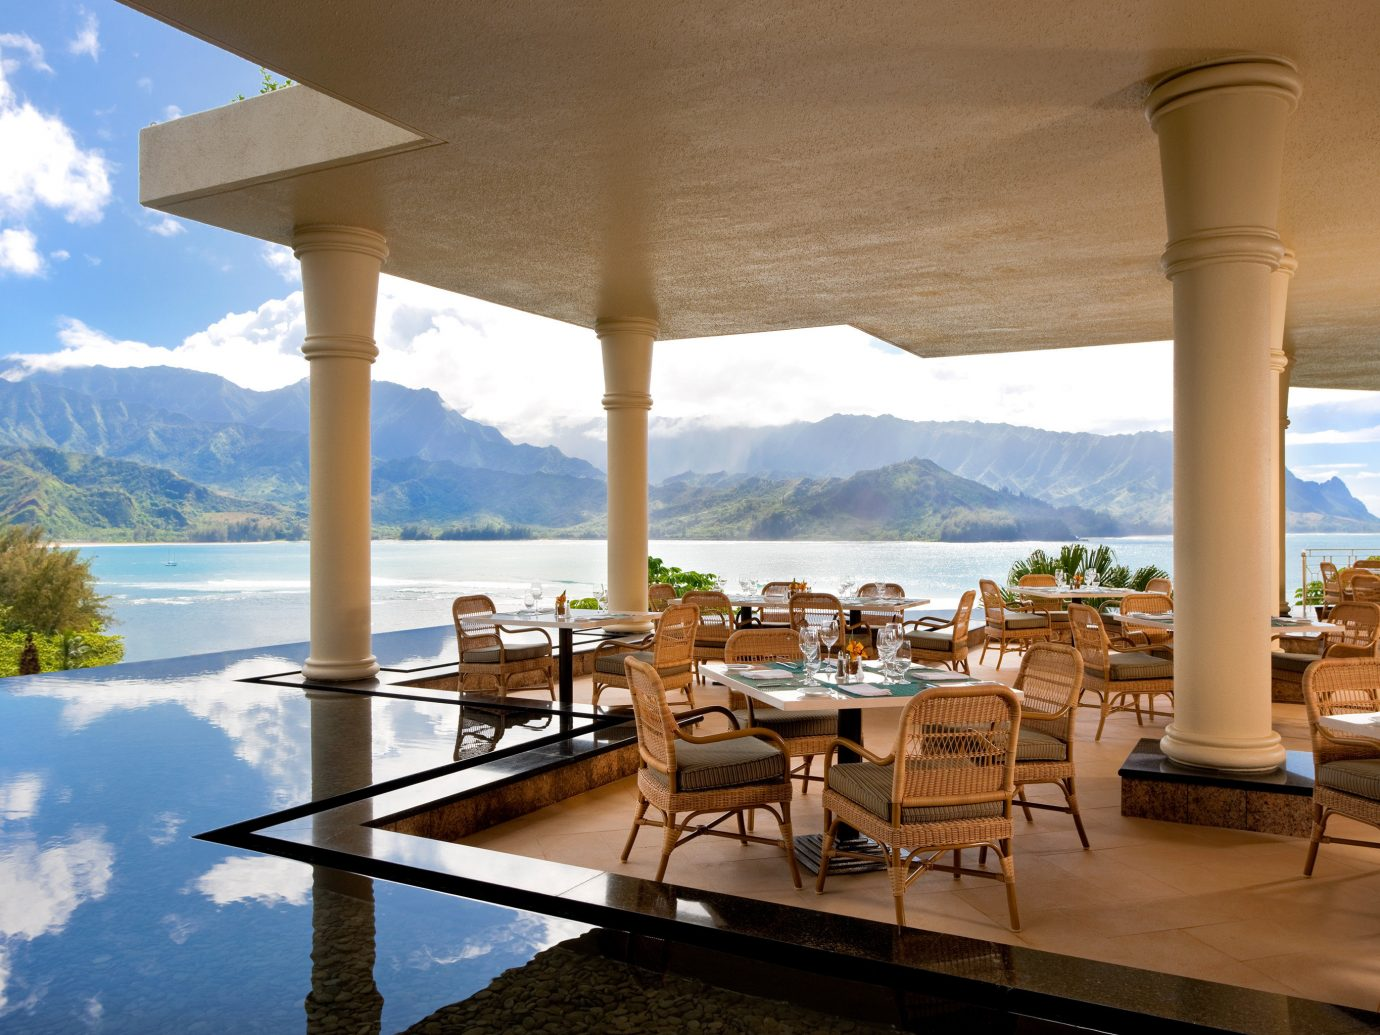 Outdoor patio by ocean at St. Regis Princeville Resort